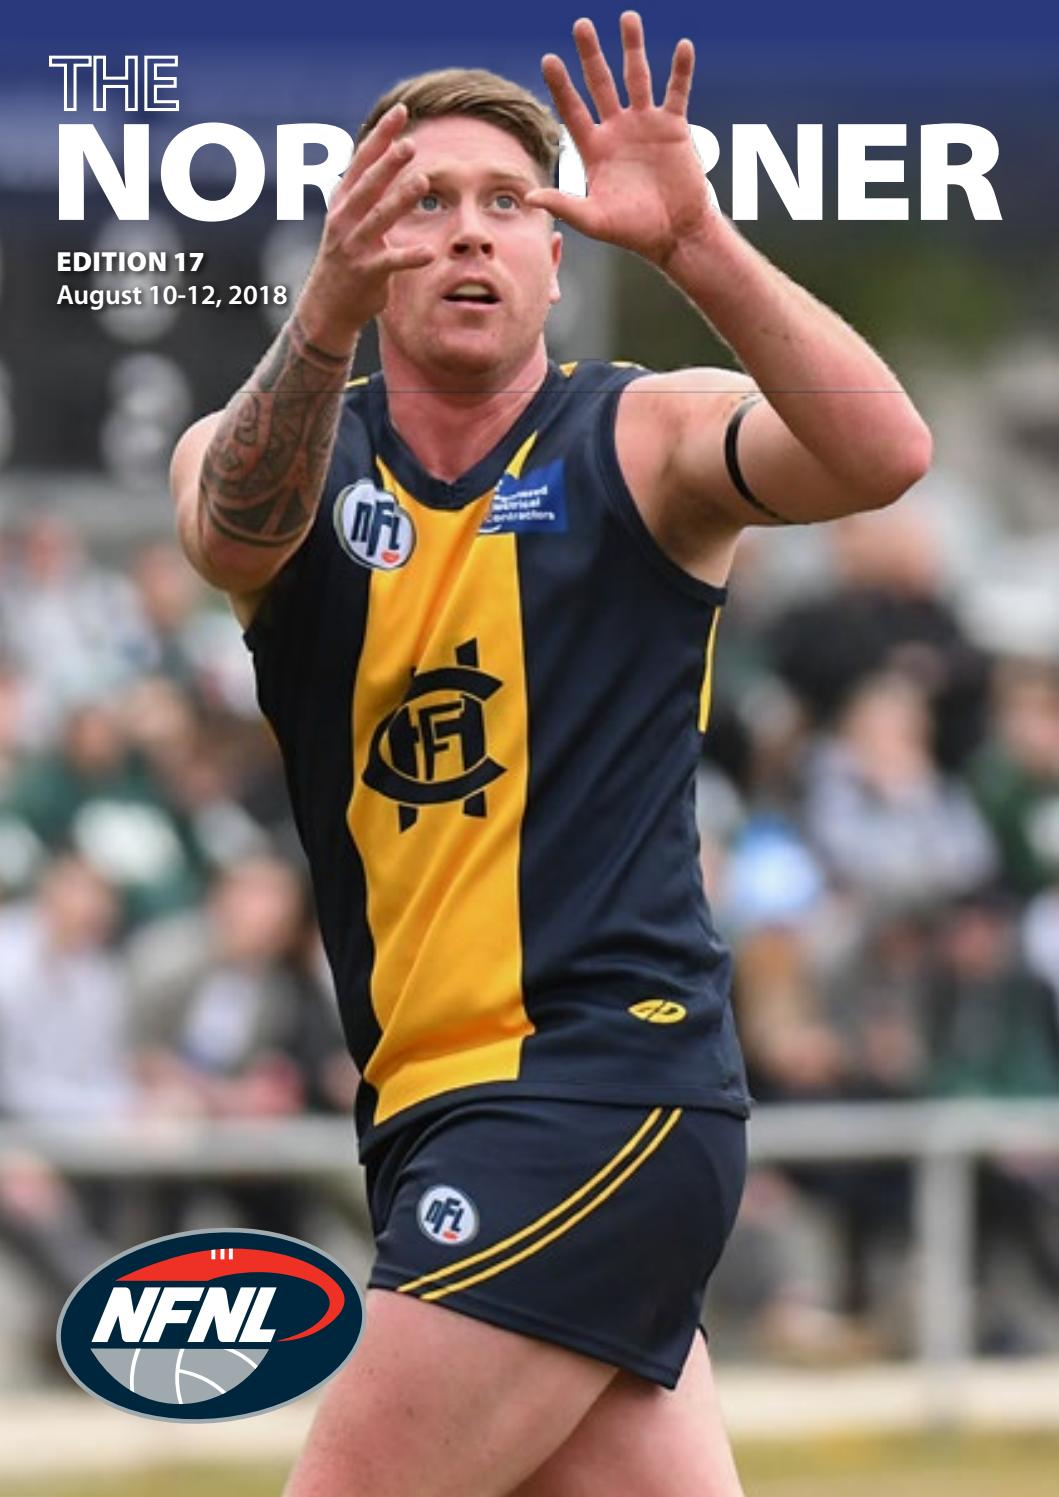 The Northerner - Edition 17, 2018 by Northern Football Netball